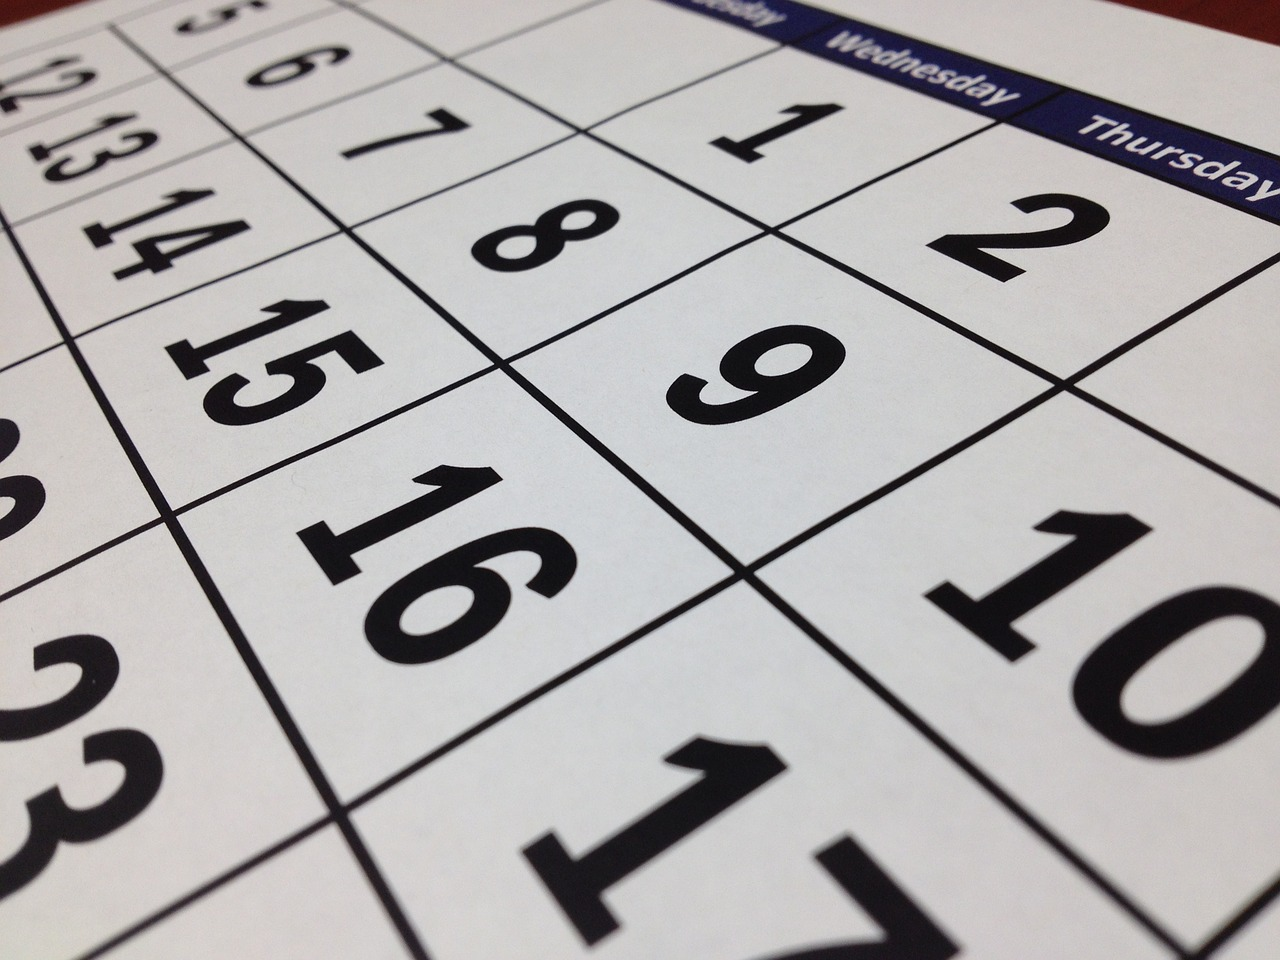 A close-up image of a calendar, representing the importance of consulting an attorney before the time frame for challenging a WV will has run if you feel a loved one's will is invalid or estate has been misallocated.